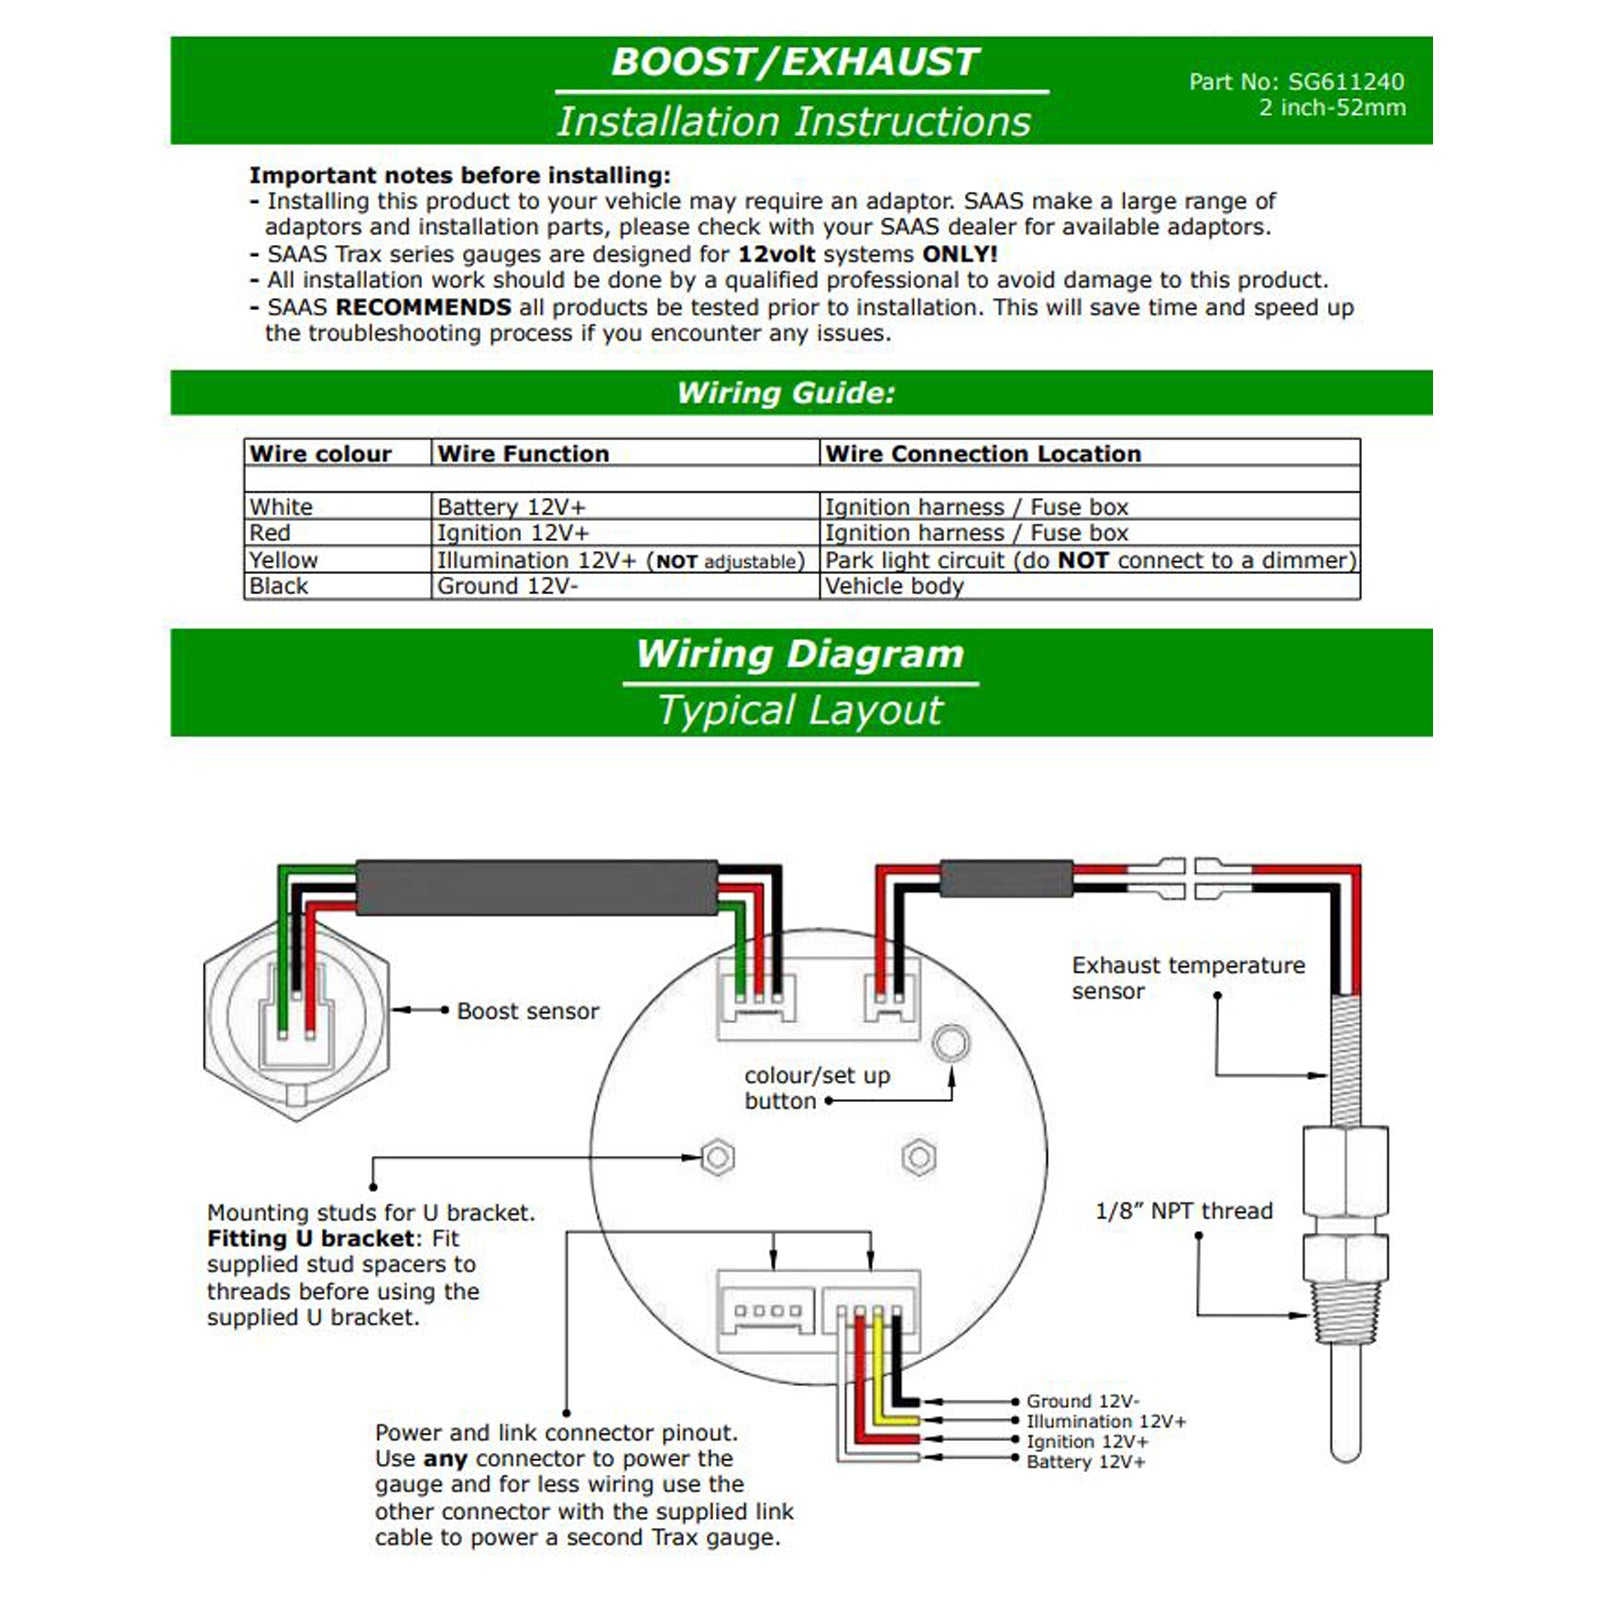 SAAS Pillar Pod suit Mitsubishi Pajero NS-NX w/ 2in1 Boost EGT Water on light relay wire diagram, auto relay diagram, motorcycle spotlight relay switch diagram, spotlight lighting, battery diagram,